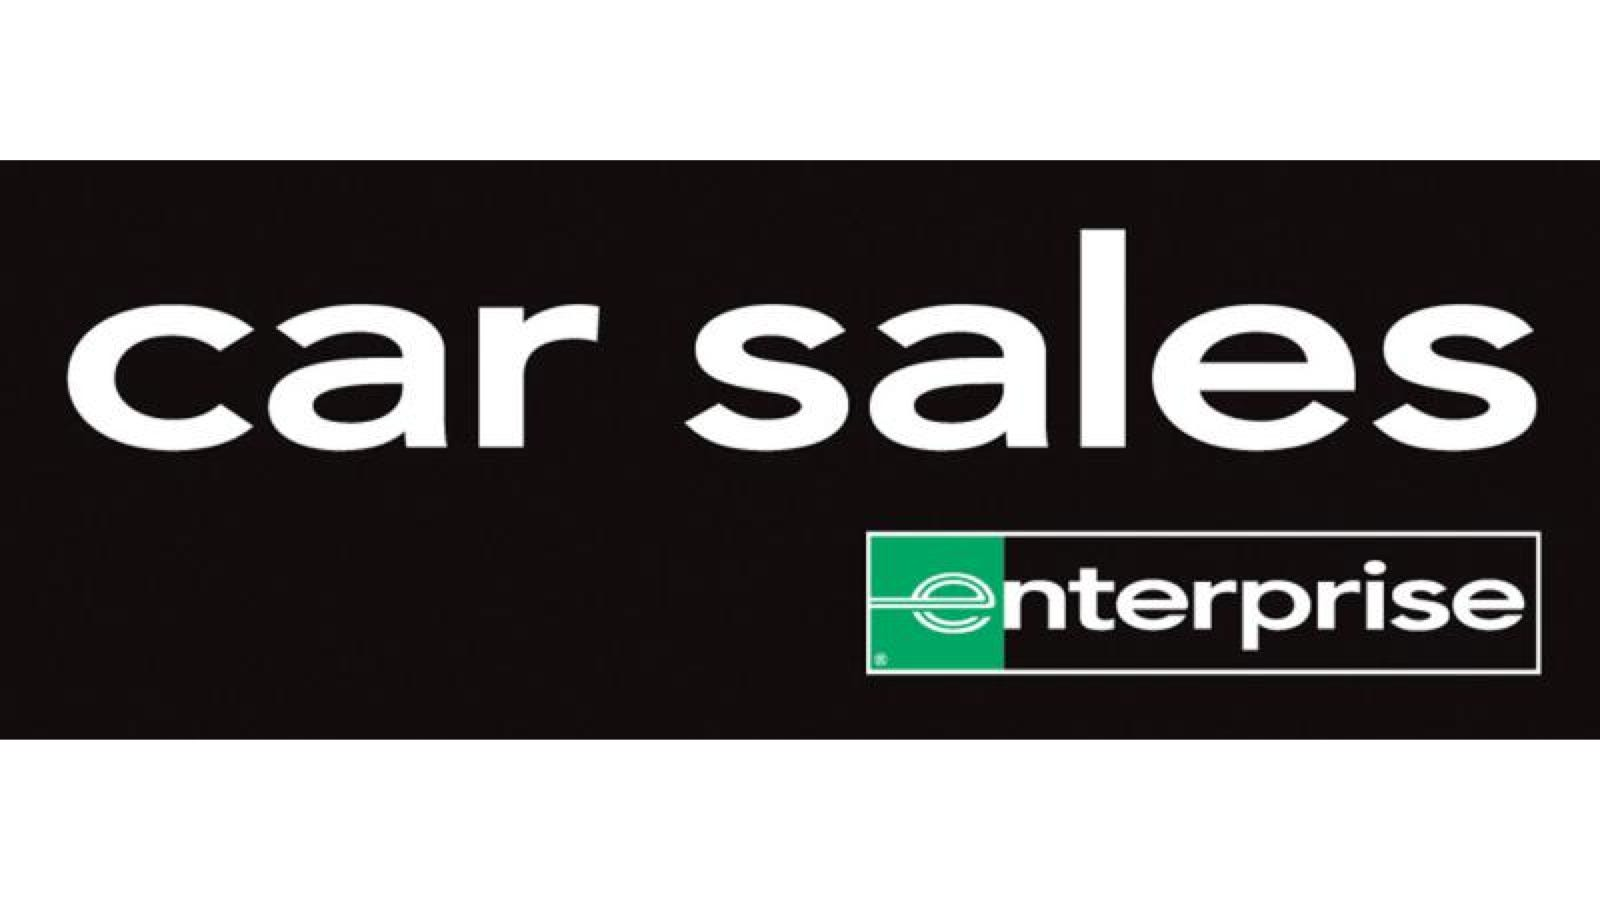 Enterprise Car Sales Launches First-Ever Television Commercial